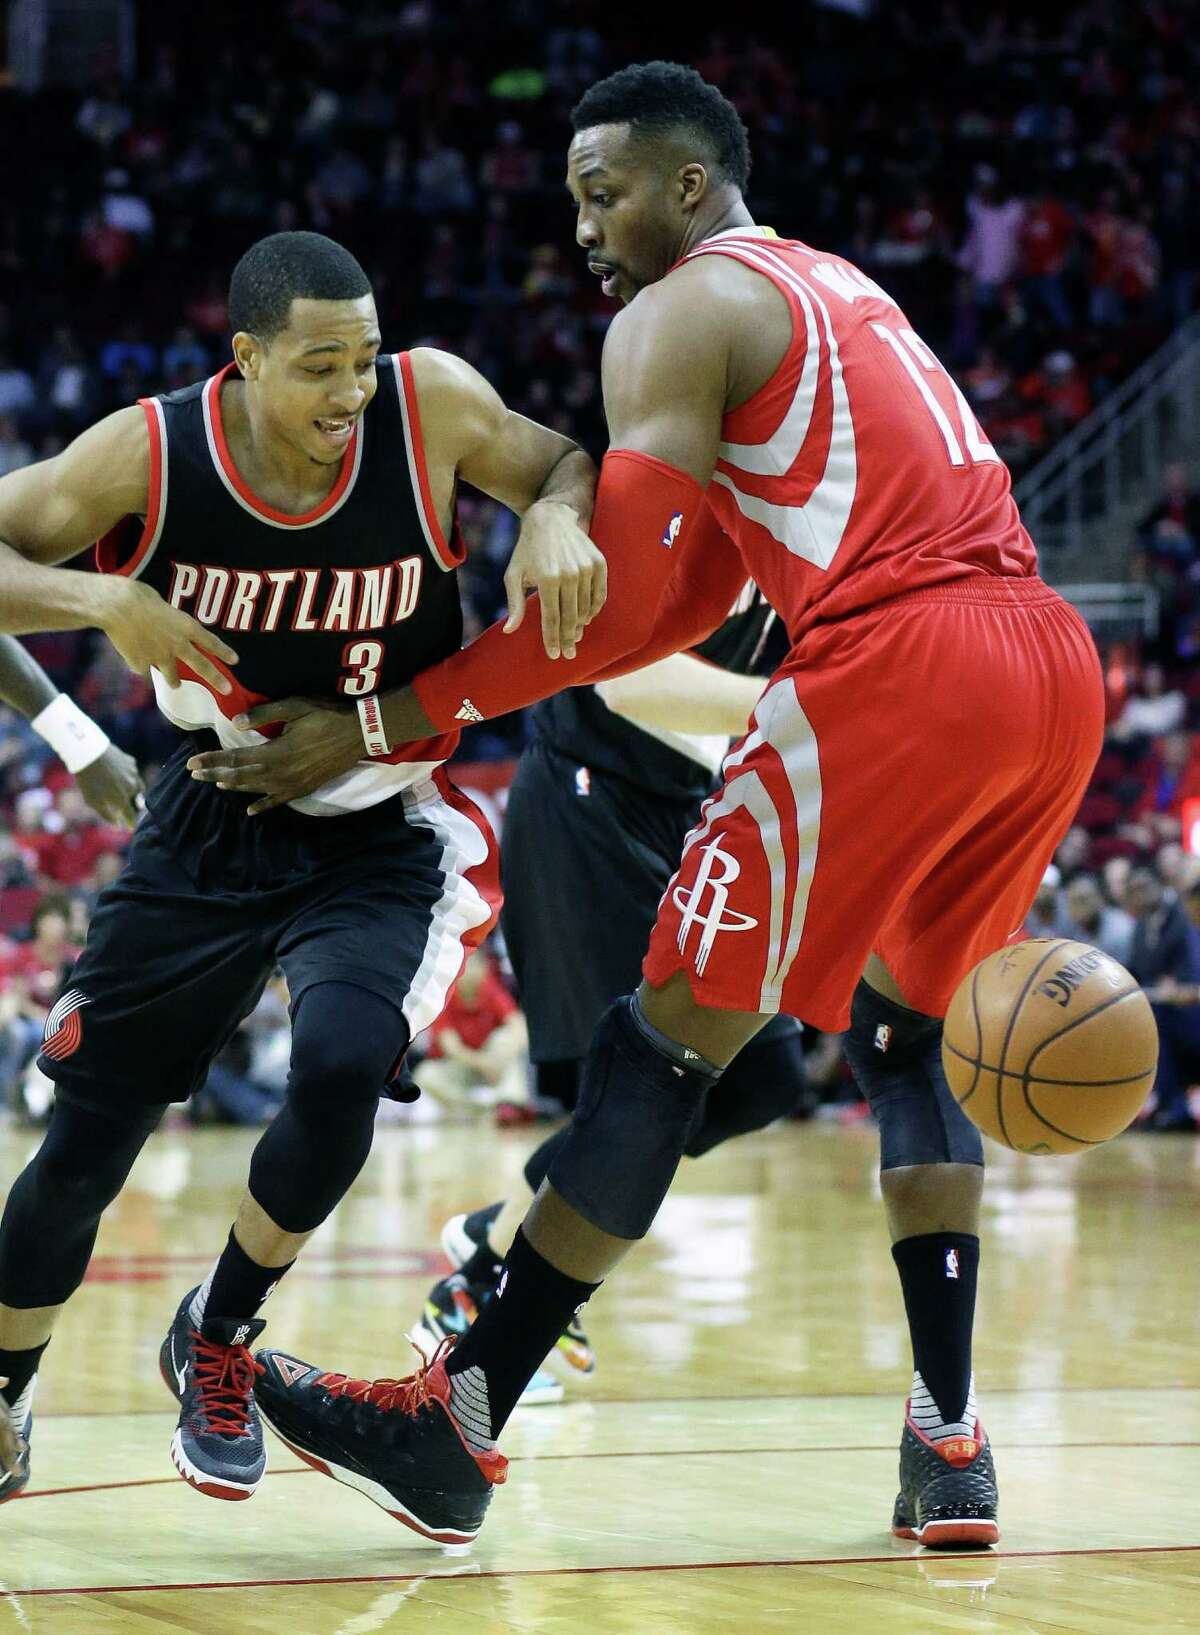 Portland Trail Blazers' C.J. McCollum (3) loses the ball with help from Houston Rockets' Dwight Howard (12) in the first half of an NBA basketball game Saturday, Feb. 6, 2016, in Houston. (AP Photo/Pat Sullivan)